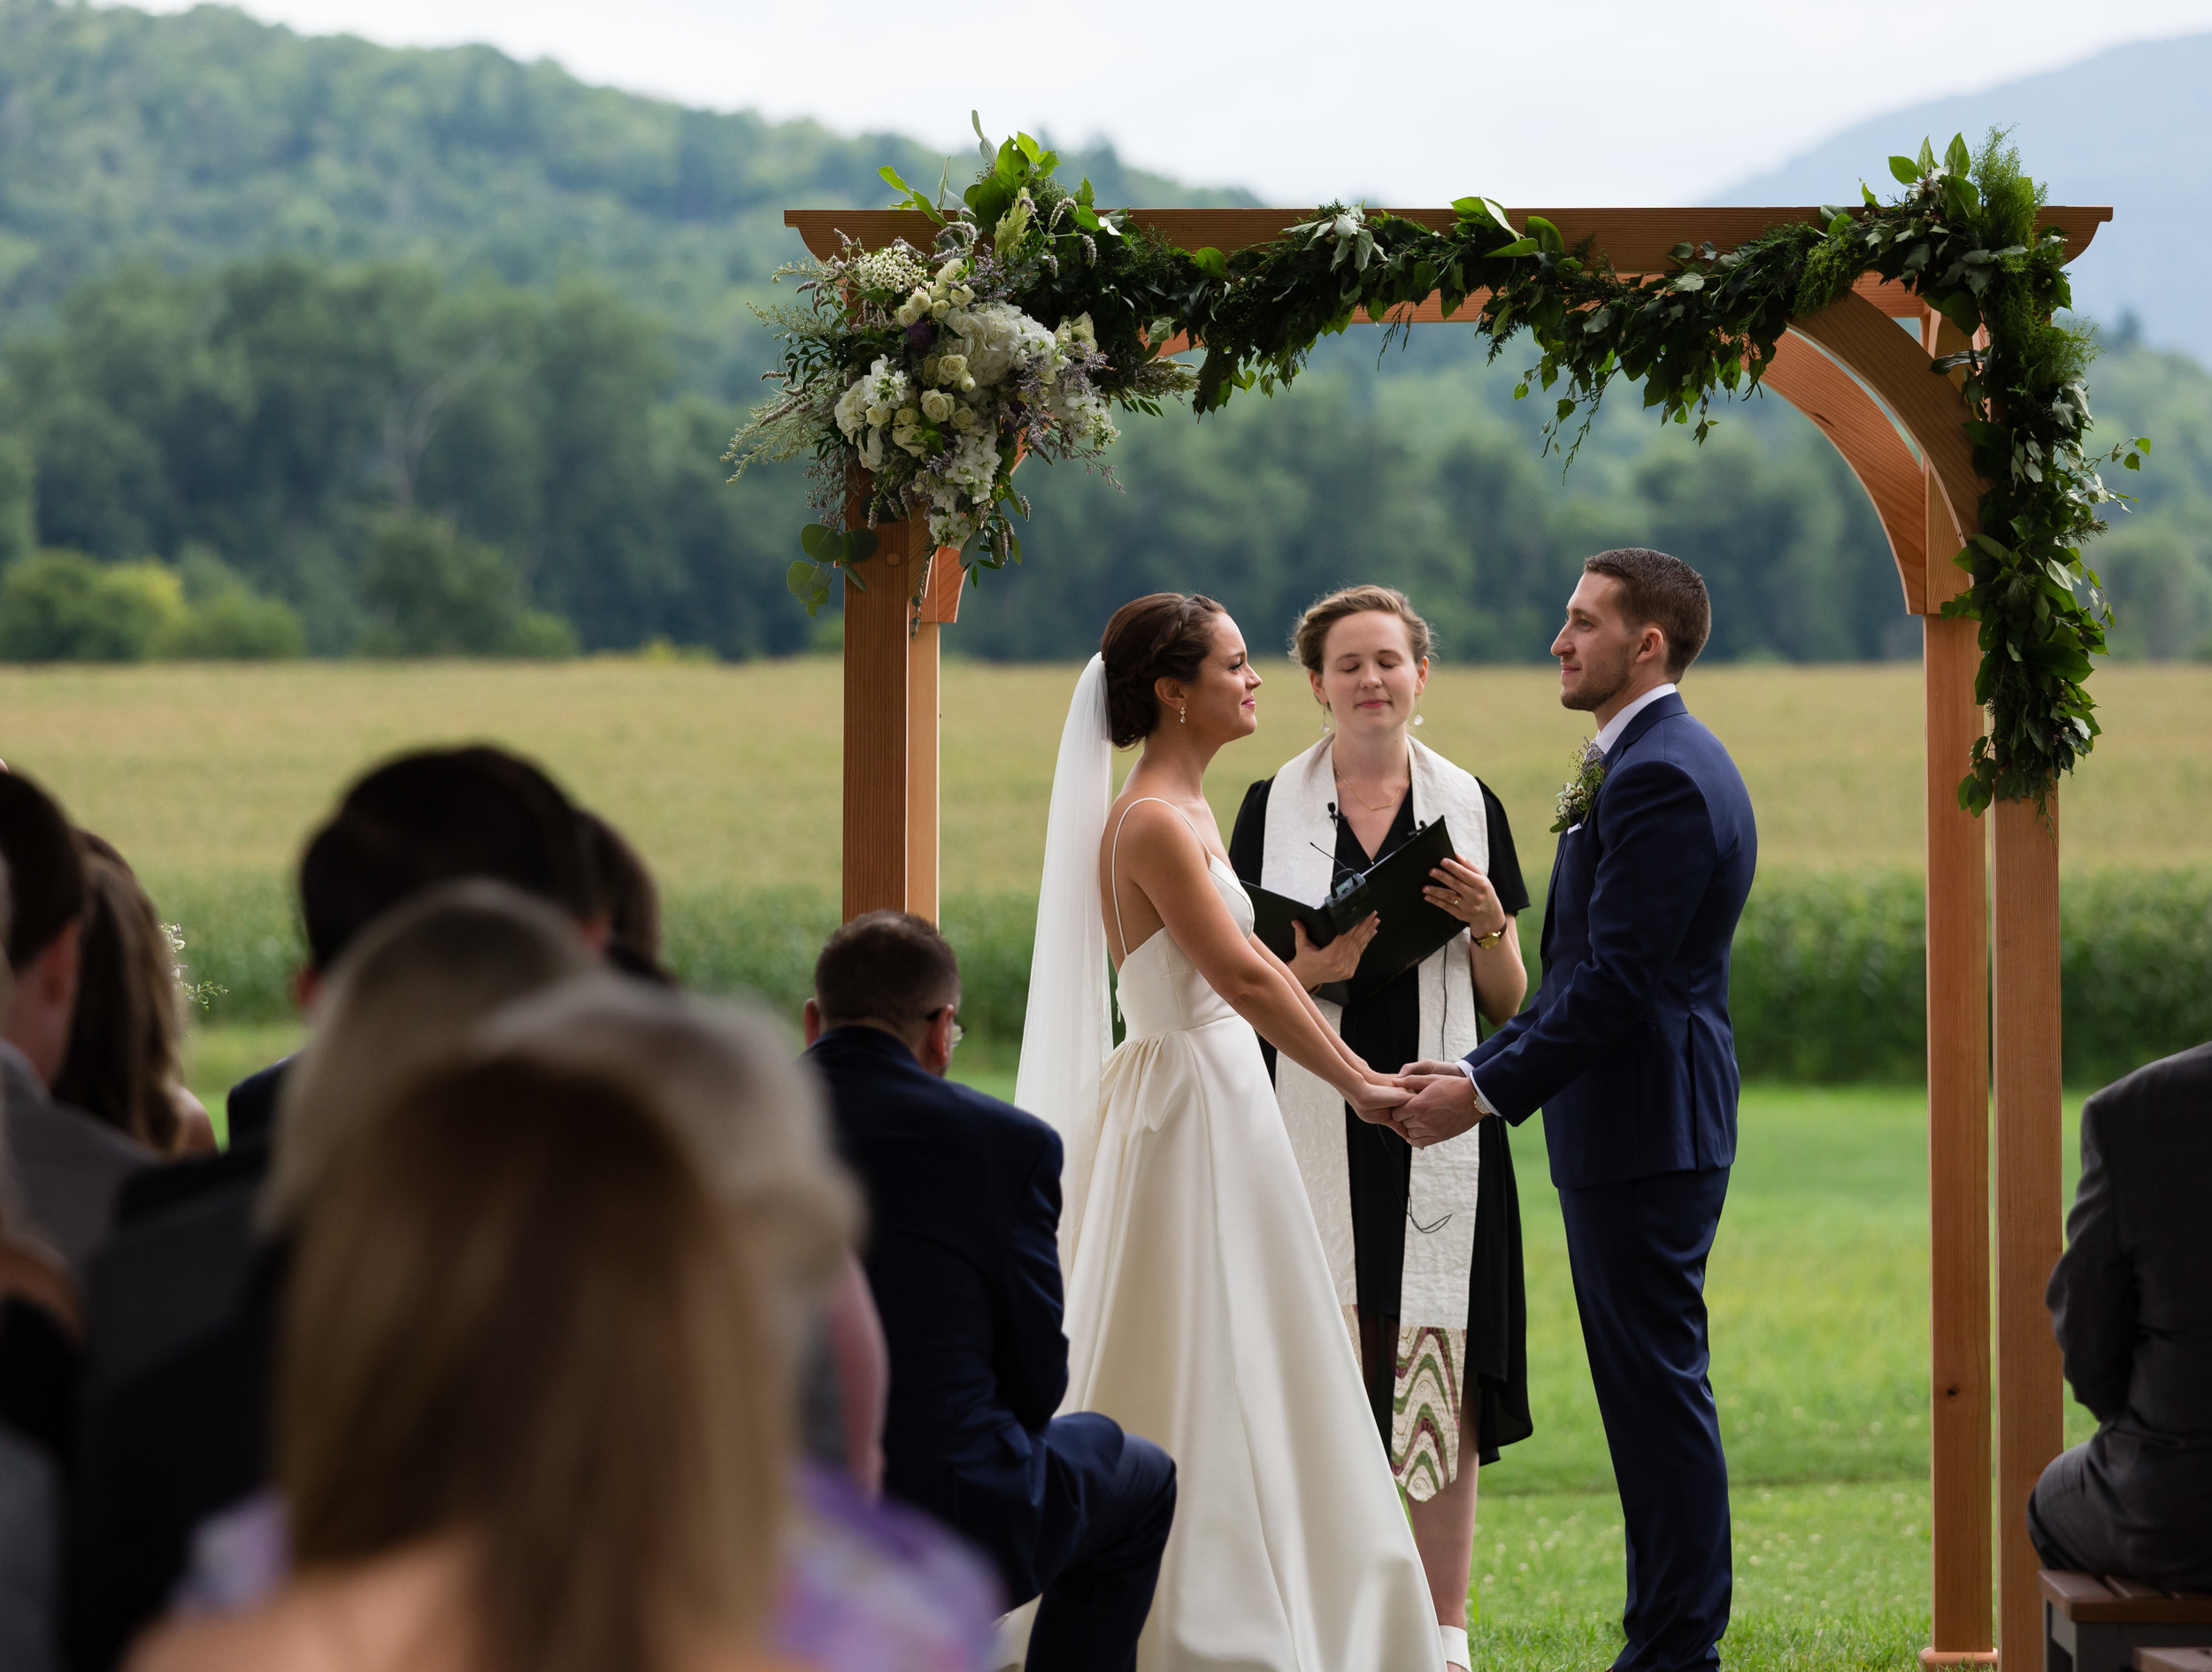 Wedding Ceremony Photography at Boyden Farms Vermont